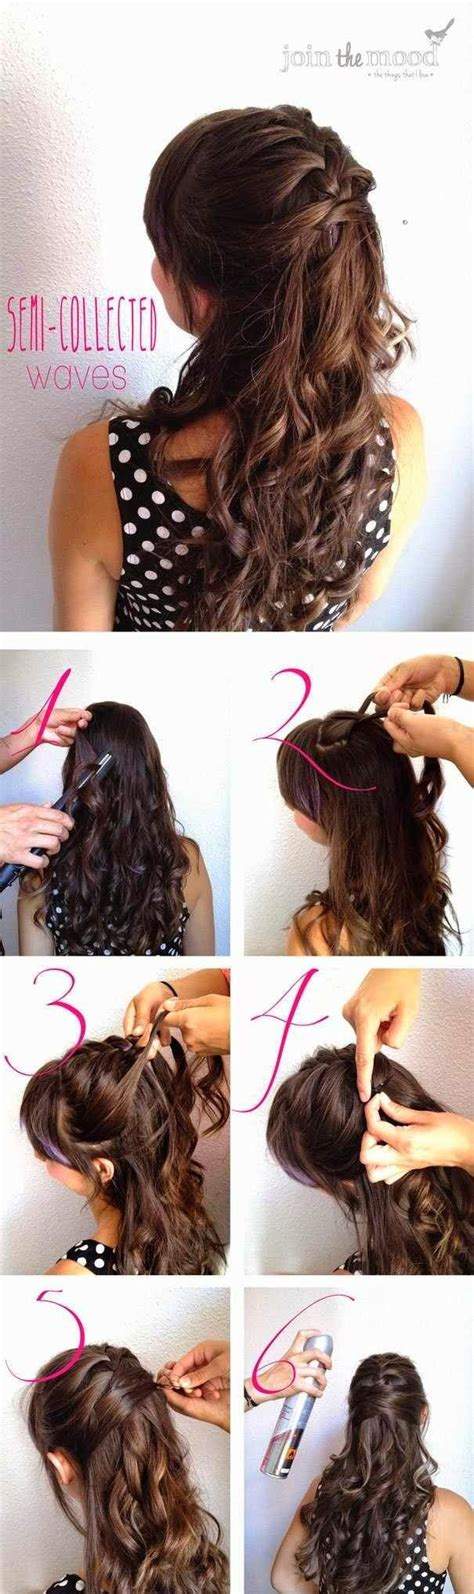 easy diy hairstyles for long curly hair fashionable half up half down hairstyles hair tutorials